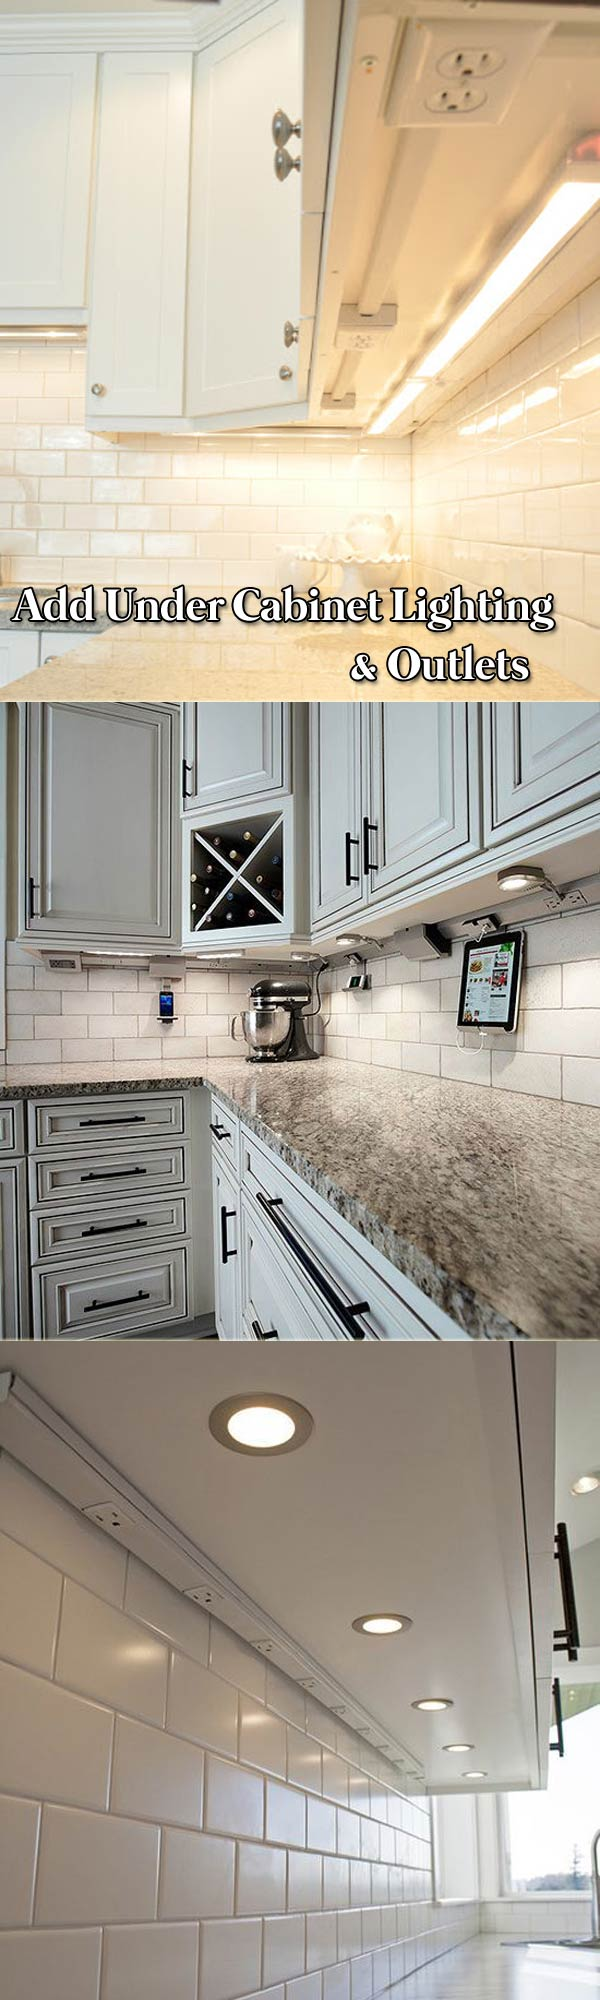 under cabinet outlets 22 cool remodeling projects to make your home amazing 27517